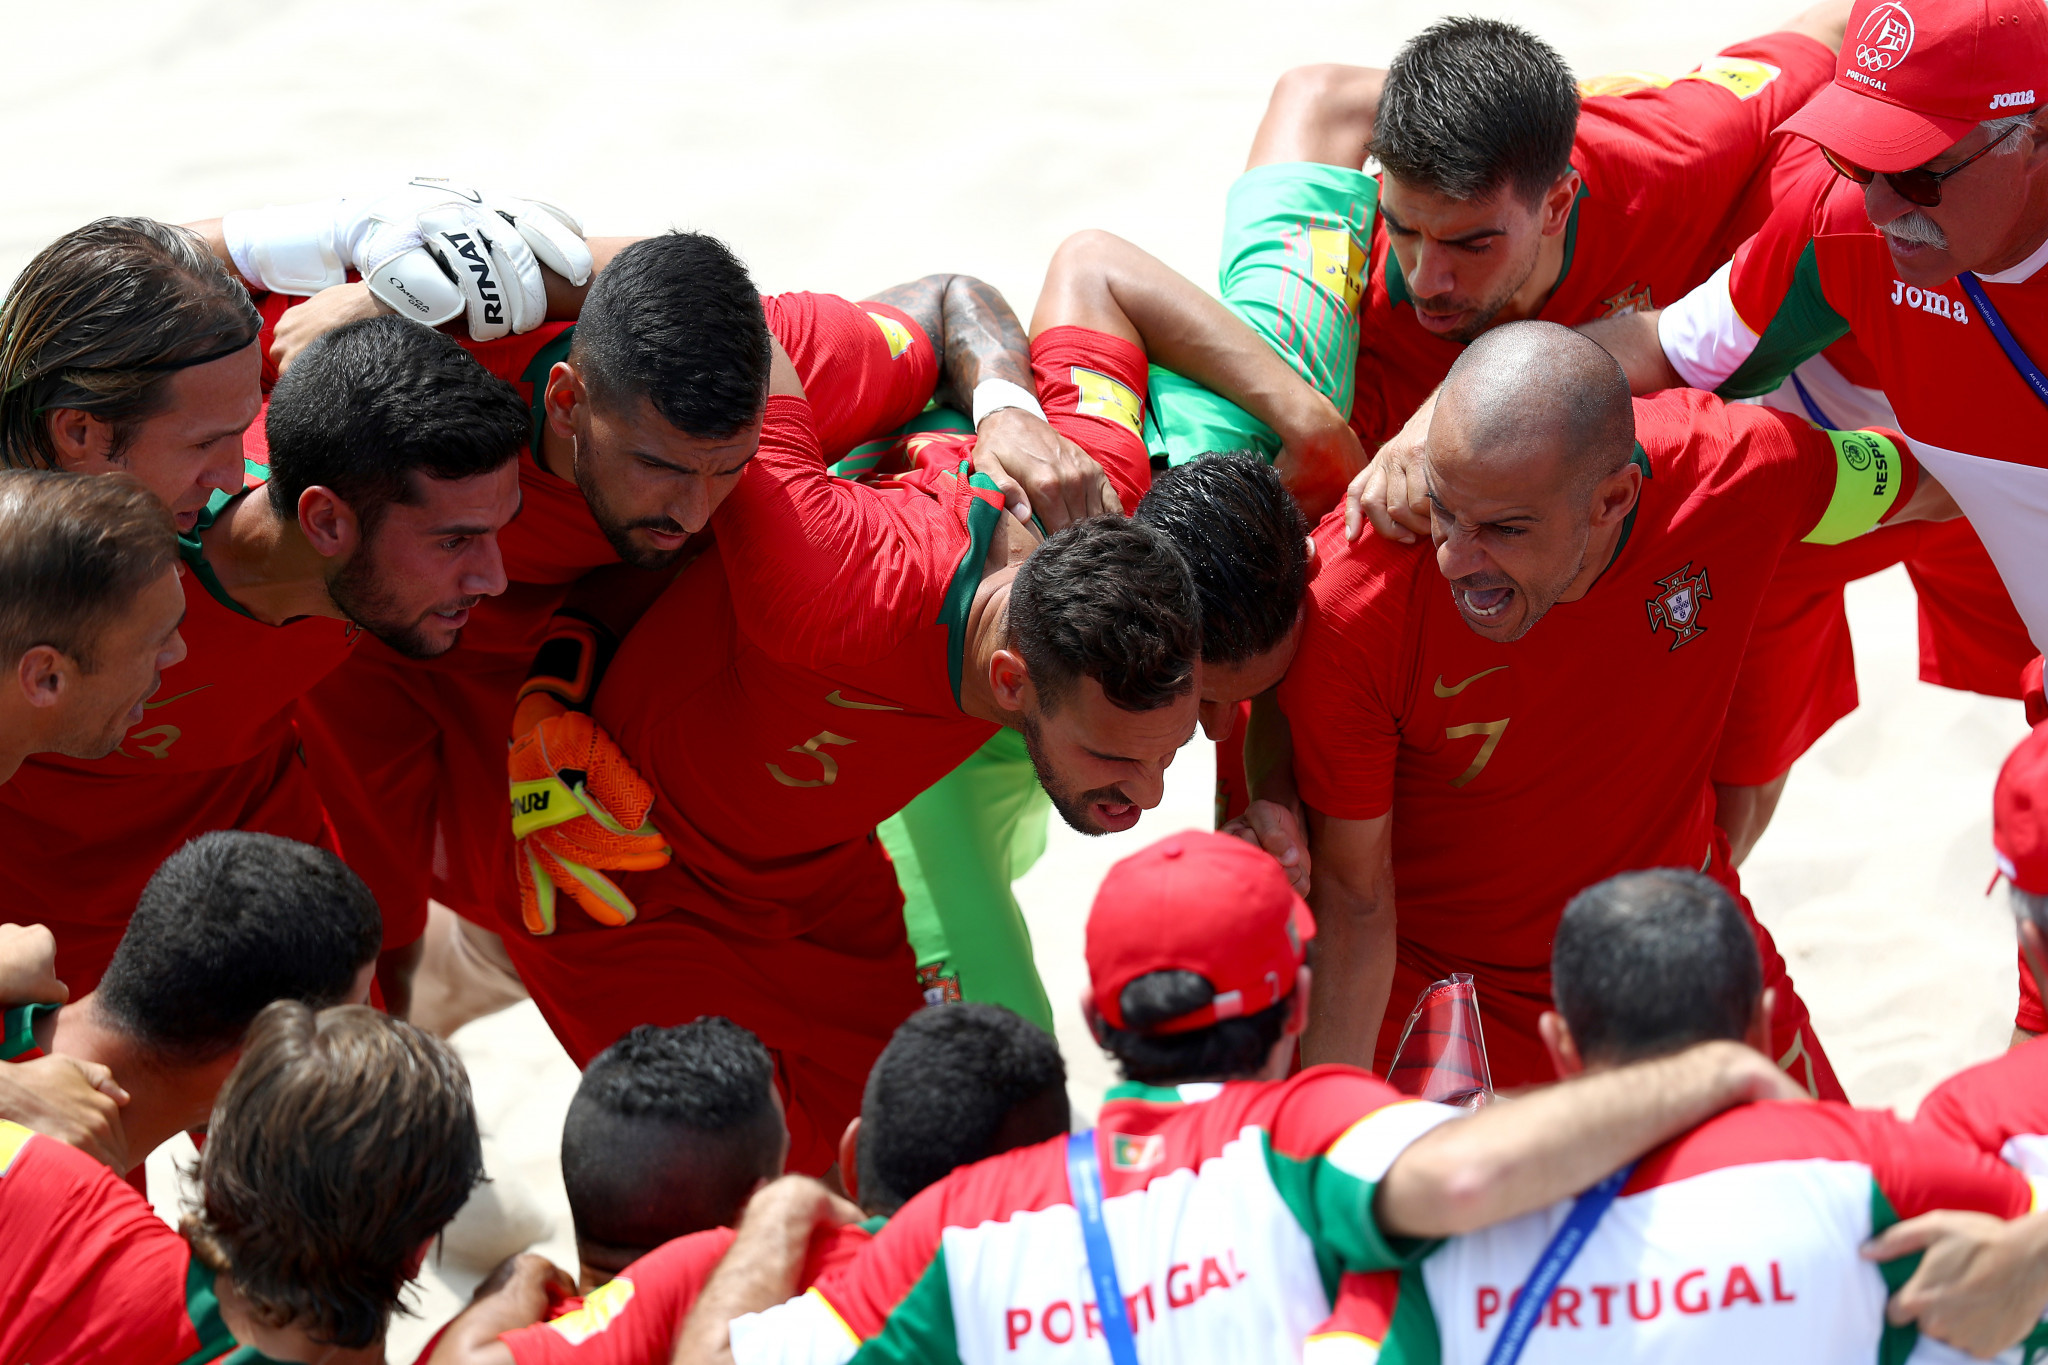 Hosts Portugal favourites for Euro Beach Soccer League Superfinal